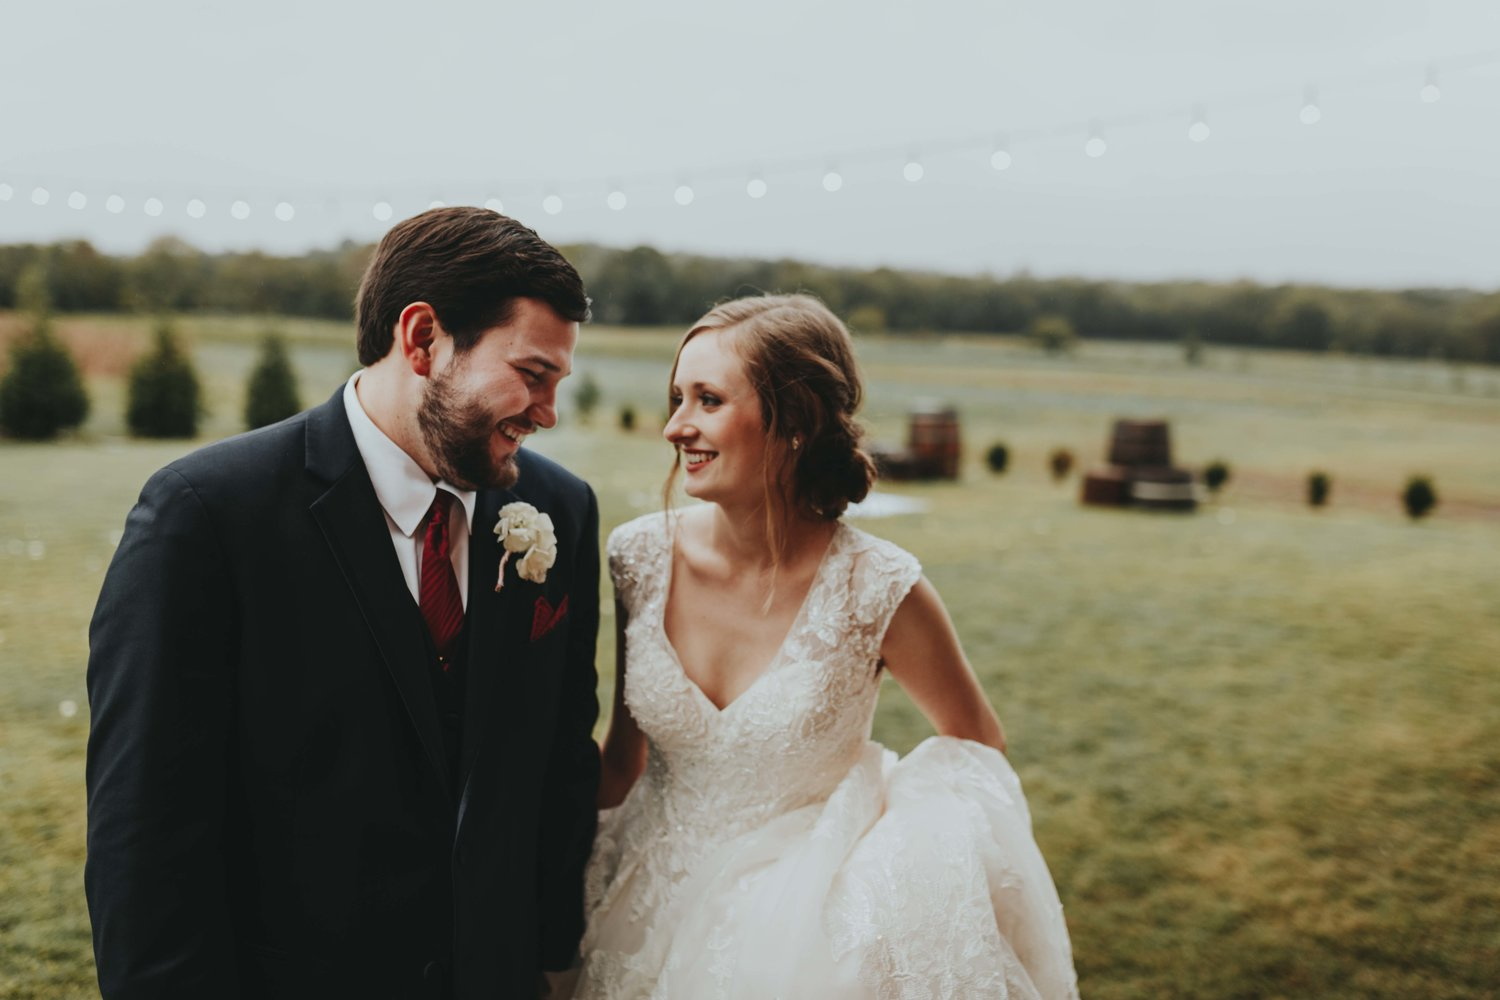 dreamy pride and prejudice ethereal wedding photography shot by top Nashville wedding photographer Emily Anne Photo Art at AllenBrooke Farms in Franklin